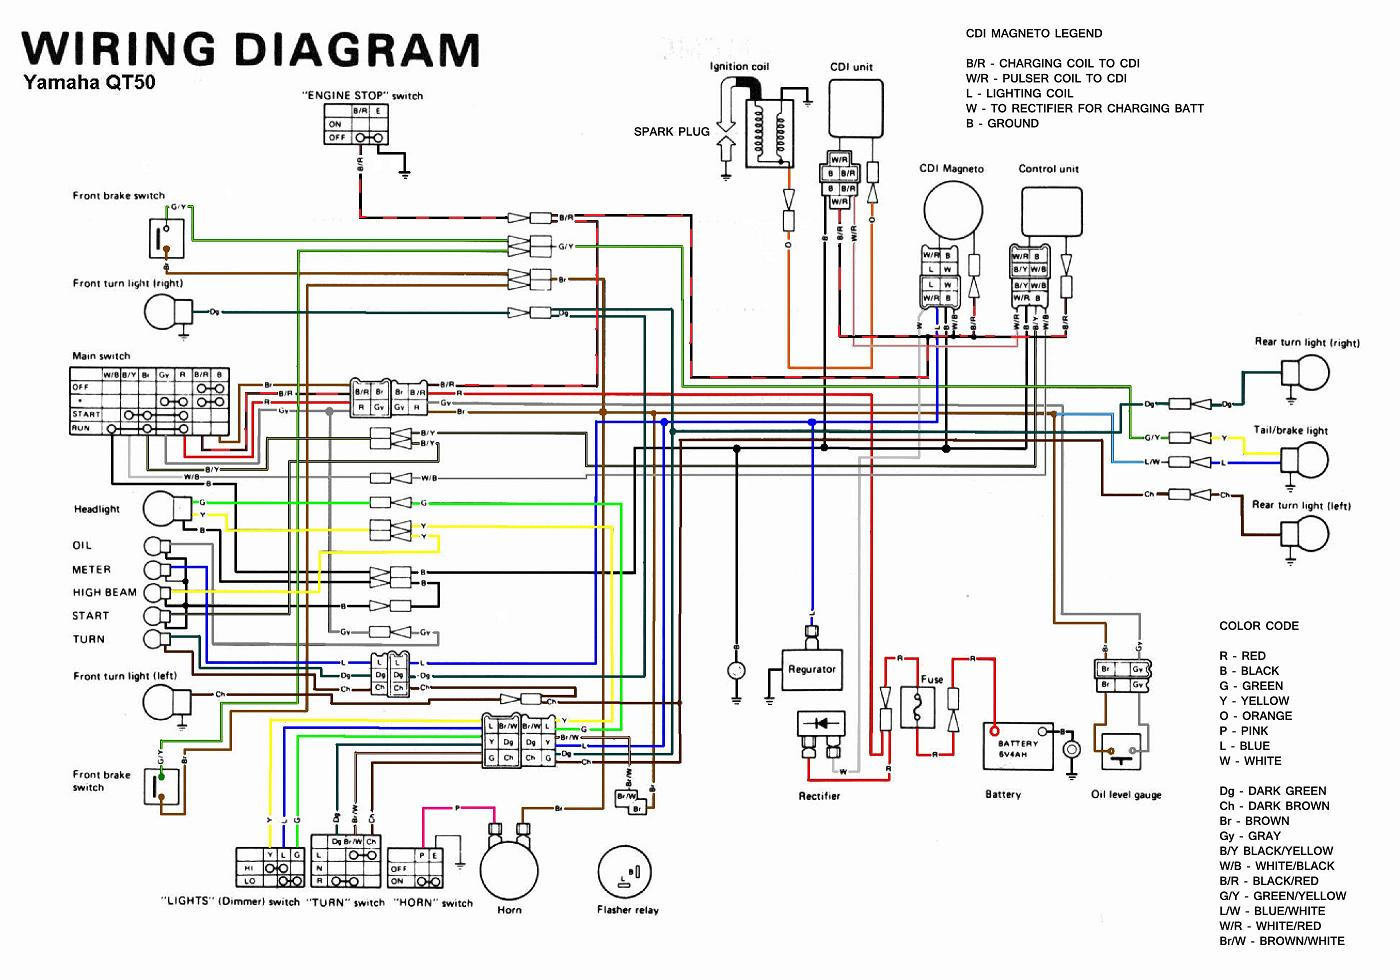 yamaha motor scooters wiring diagram china scooters wiring diagram 2011